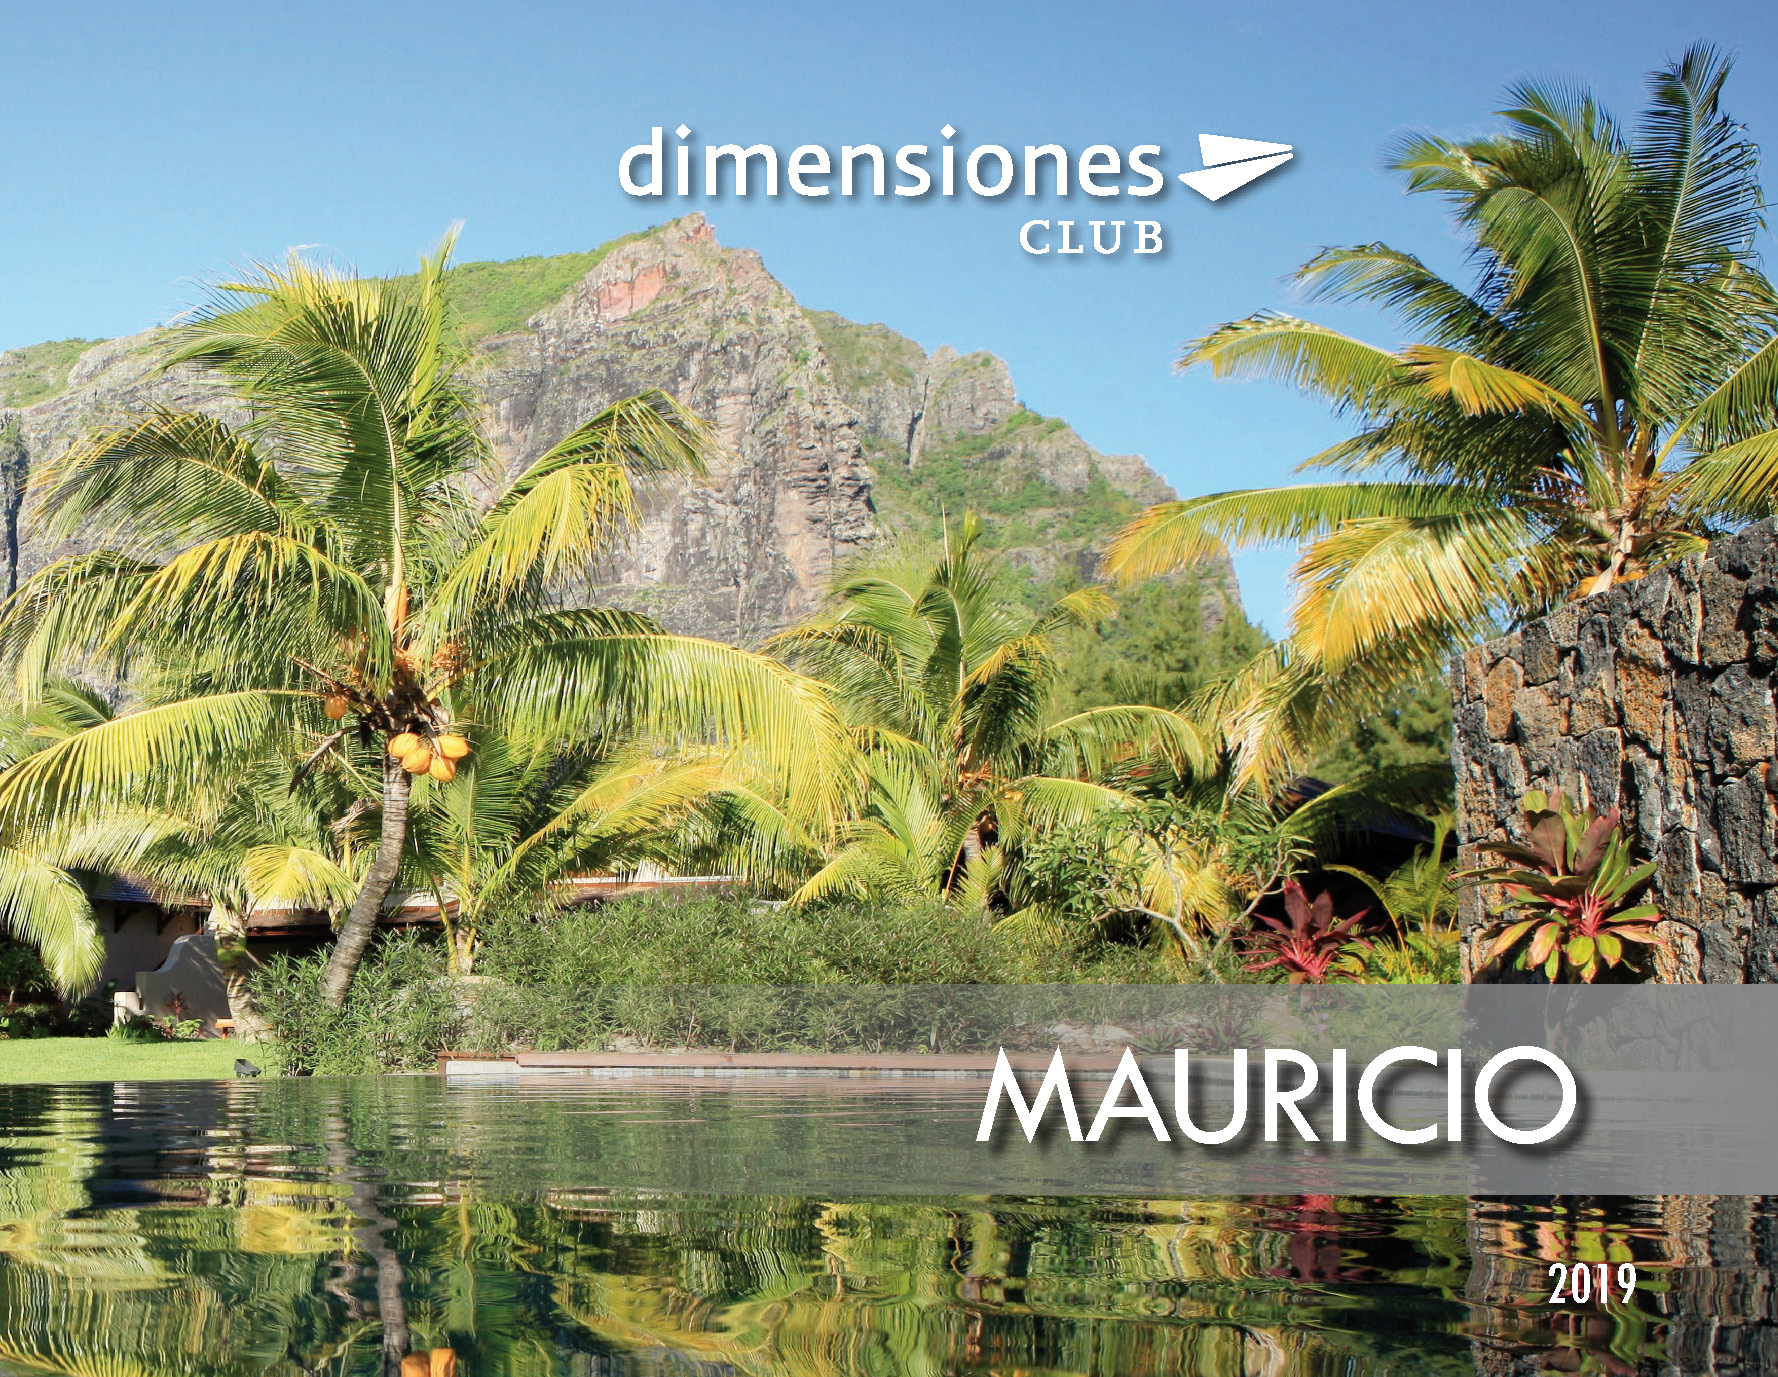 Catalogo Dimensiones Club Mauricio 2019